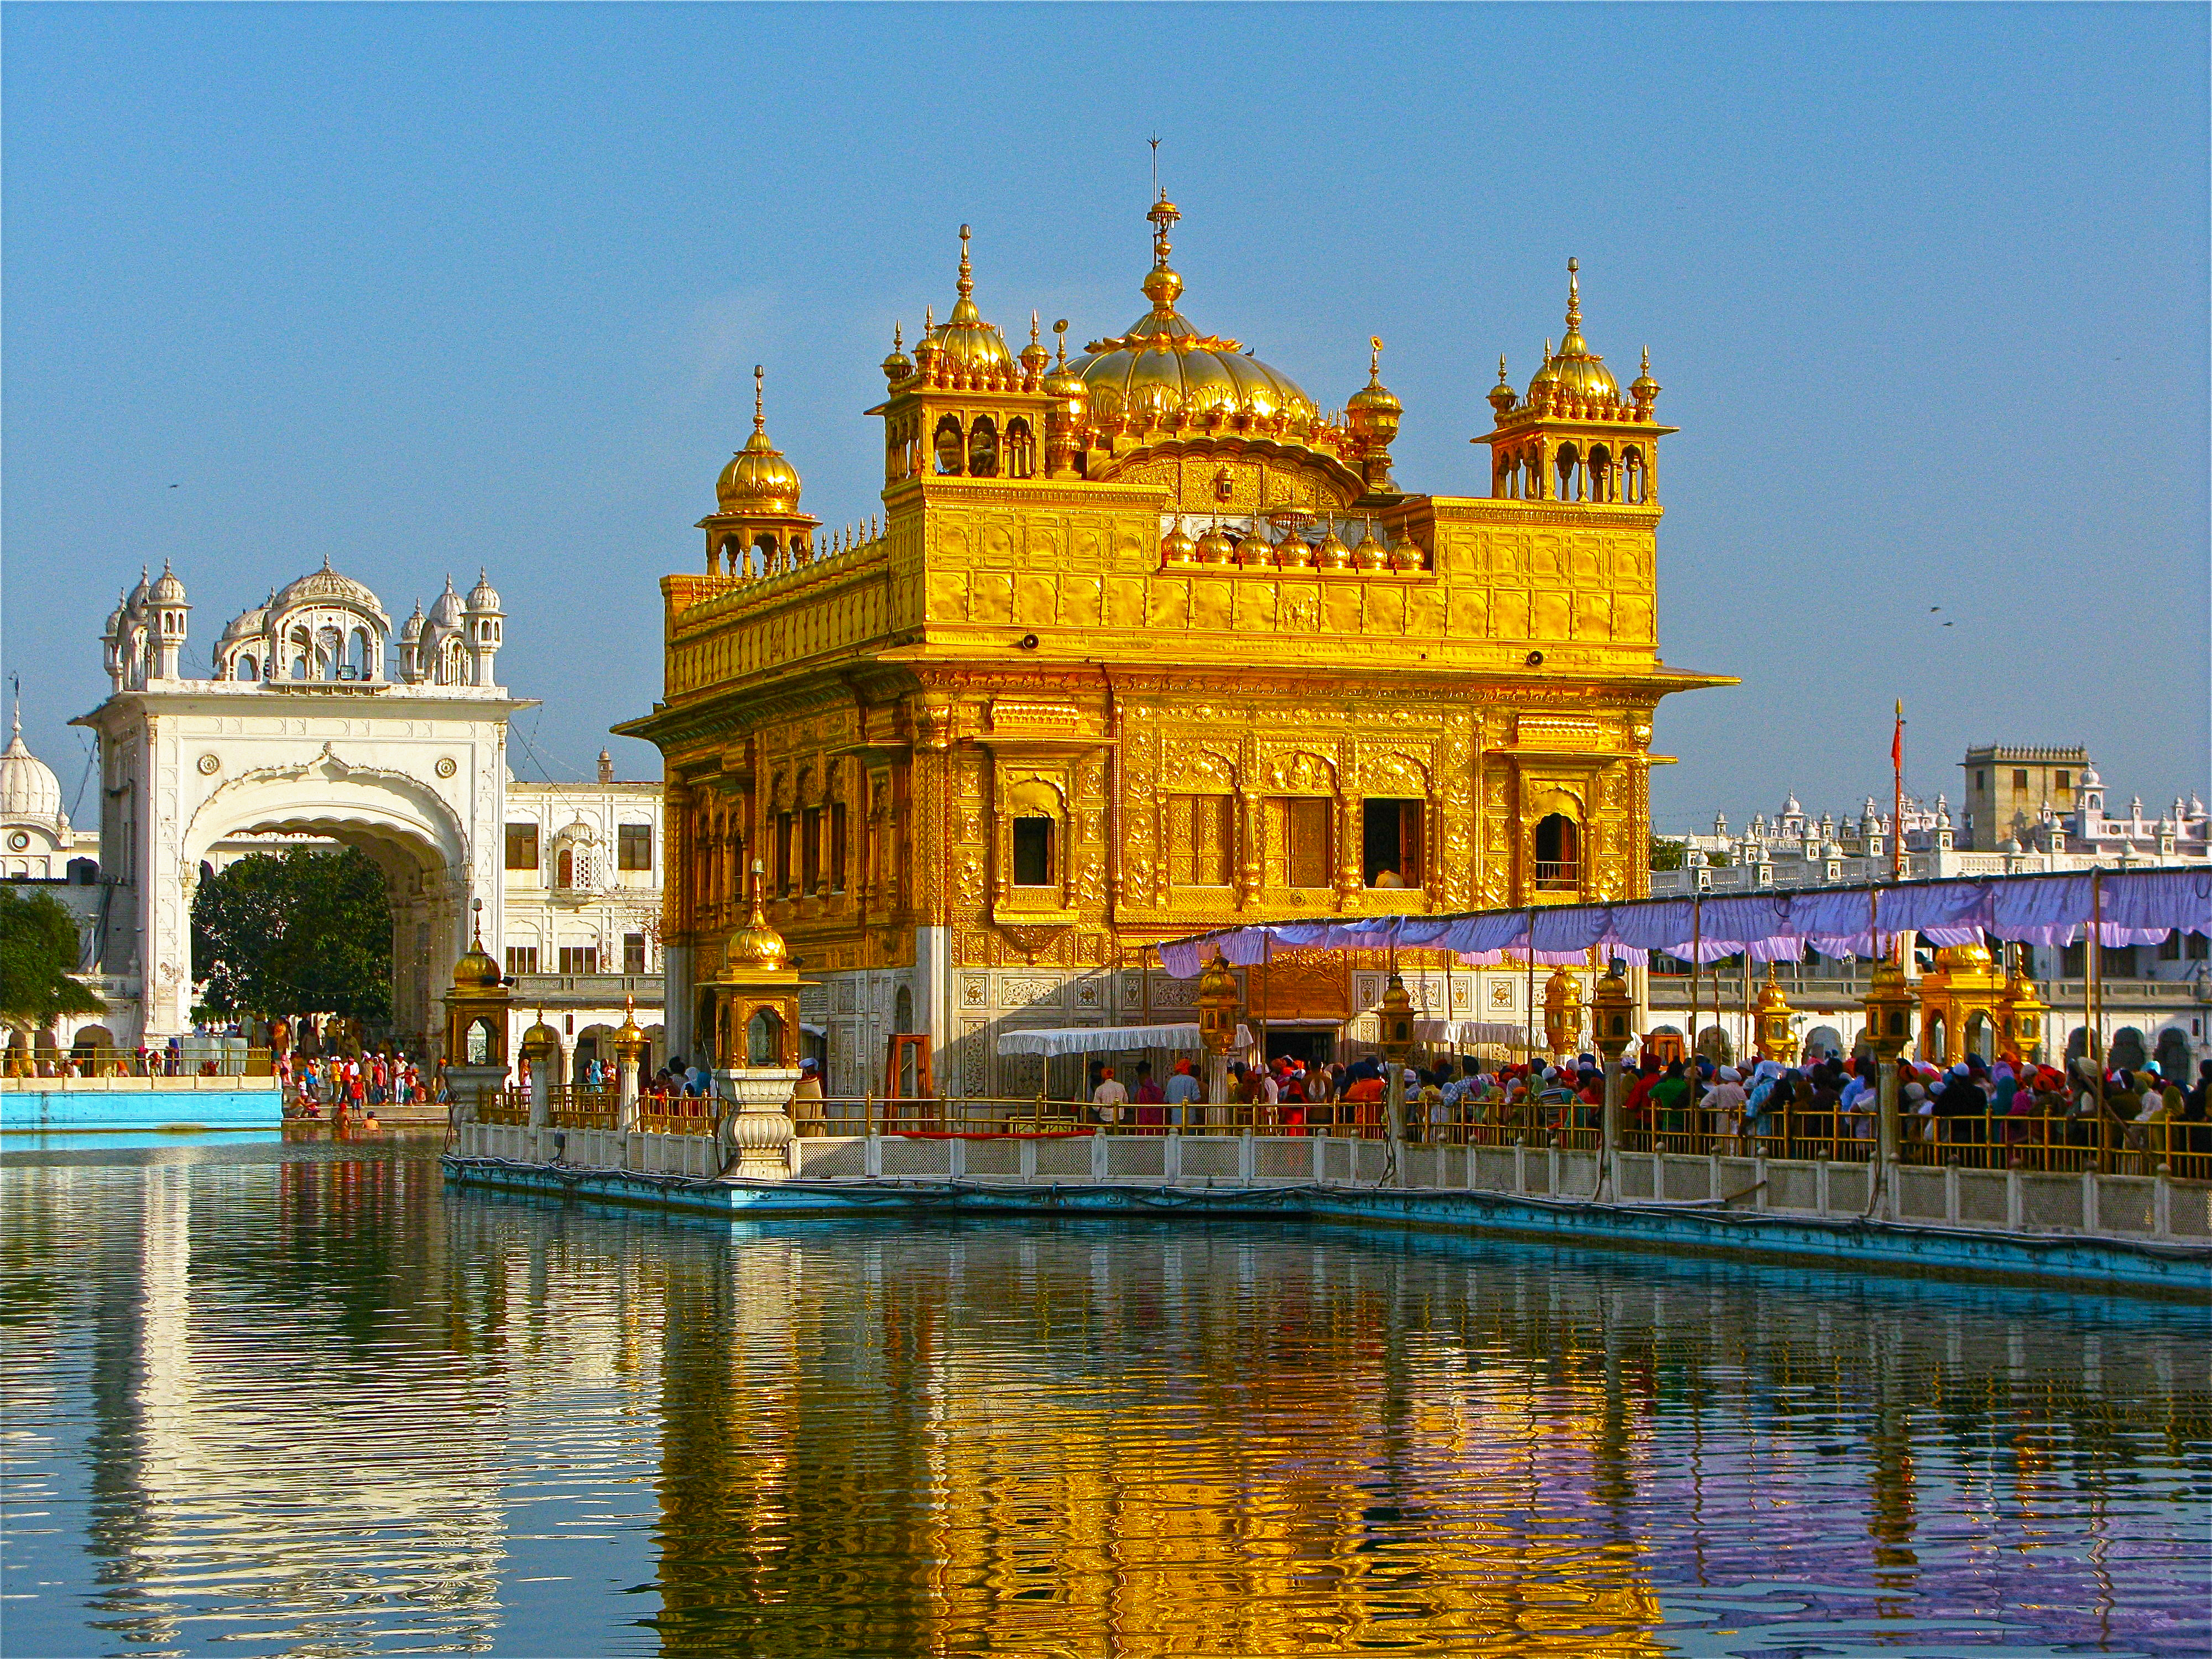 file:sarovar and the golden temple - wikimedia commons